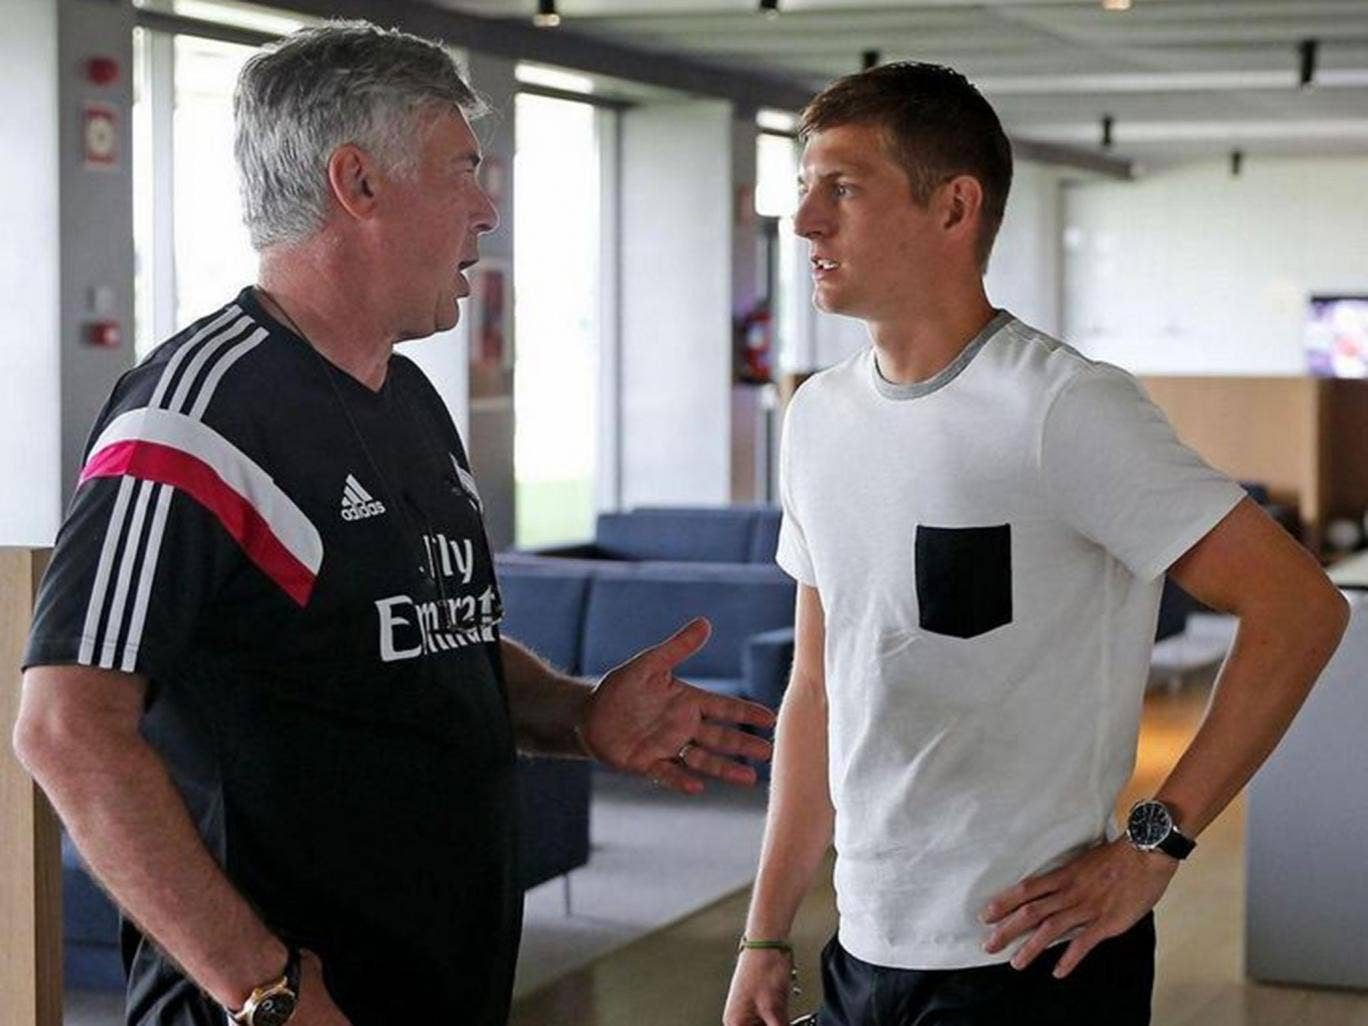 Toni Kroos has completed his move to Real Madrid - speaking to Los Blancos manager Carlo Ancelotti